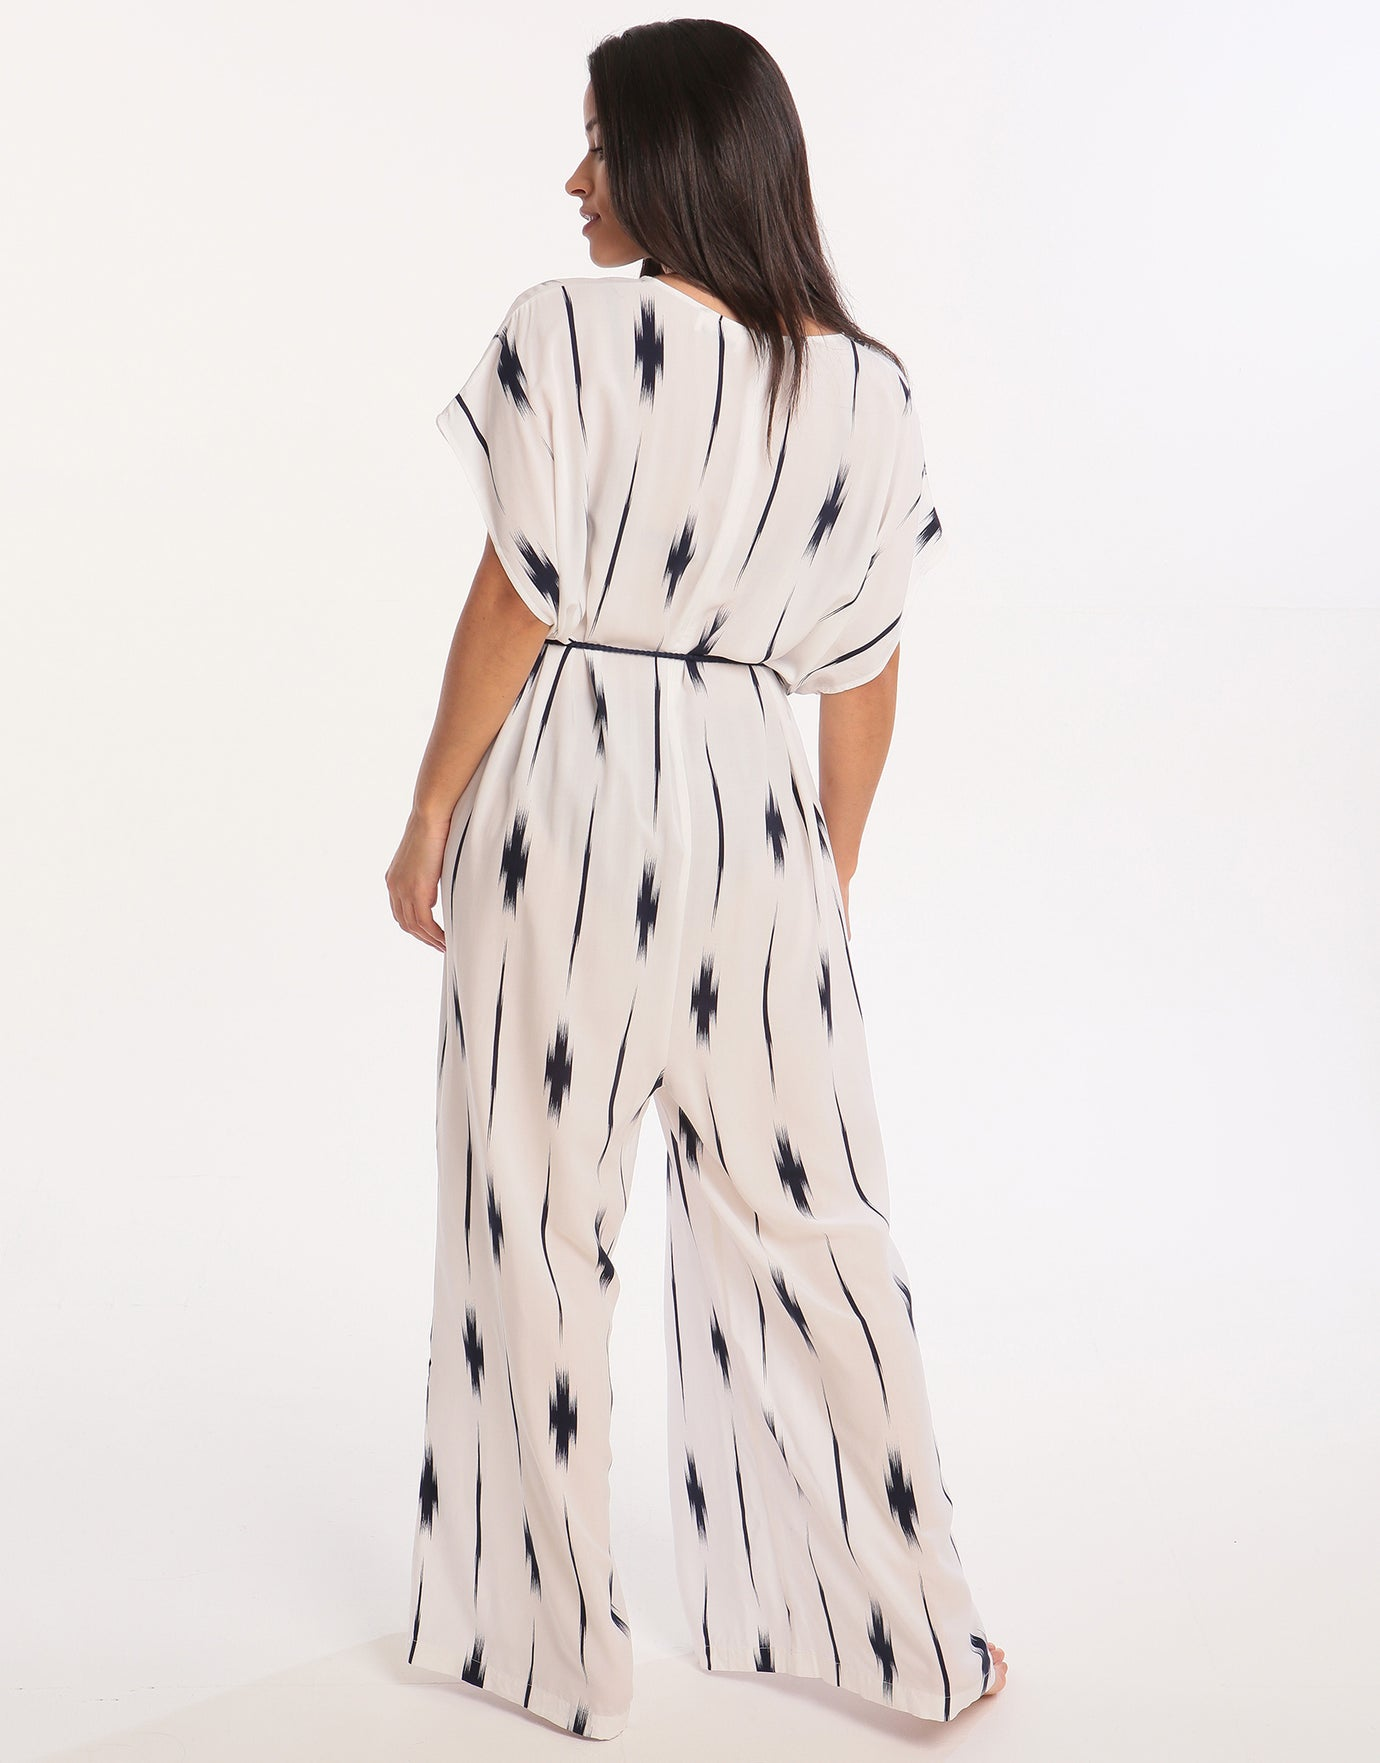 Watercult Artful Dot Jumpsuit - Off White